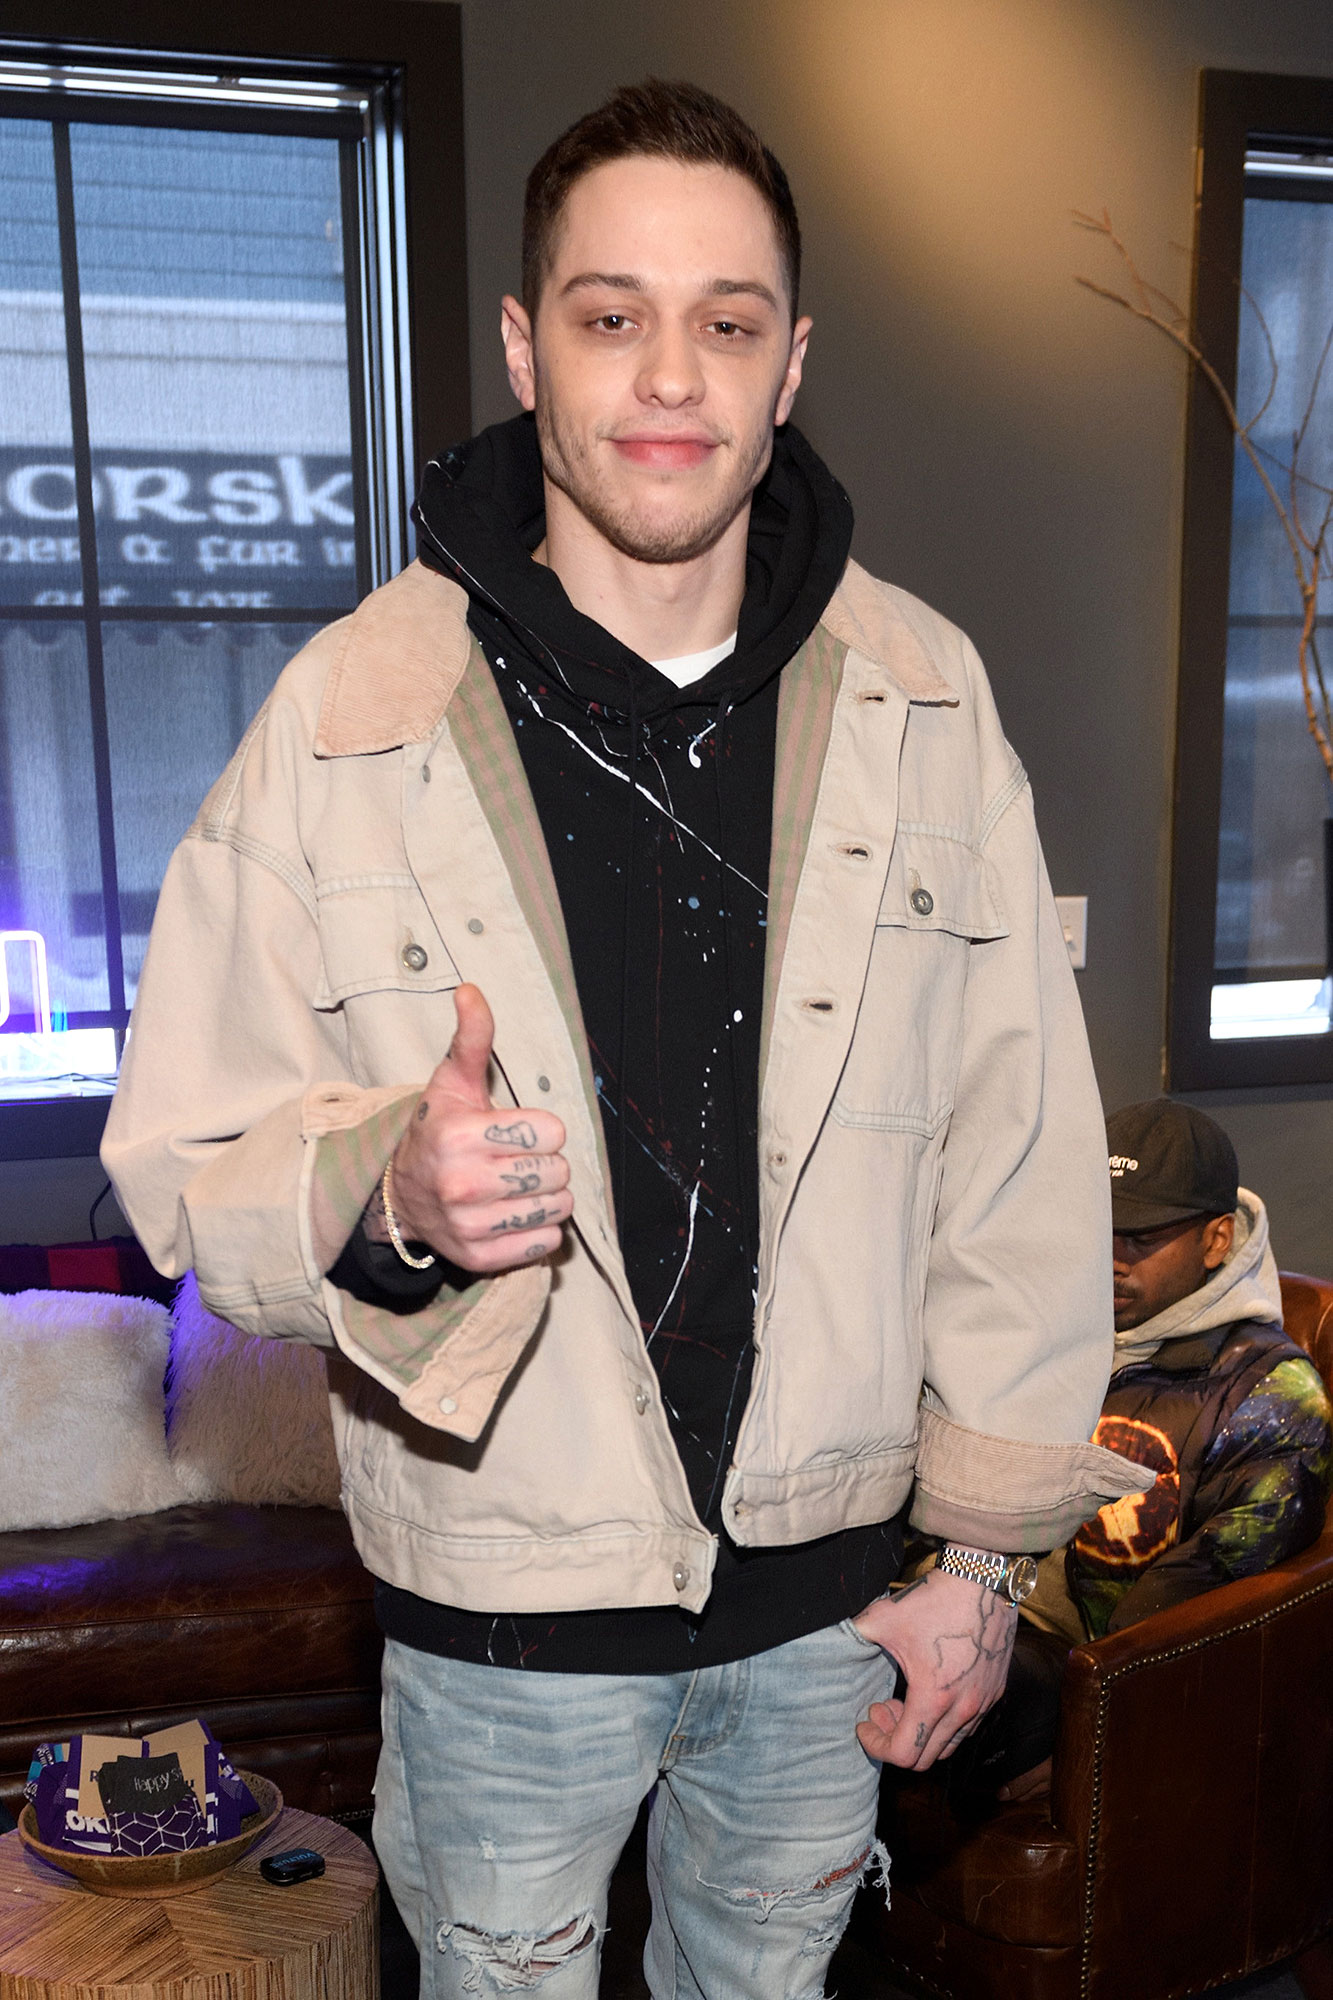 Buzzzz-o-Meter - PARK CITY, UT – JANUARY 28: Pete Davidson attends The Vulture Spot during Sundance Film Festival on January 28, 2019 in Park City, Utah. (Photo by Daniel Boczarski/Getty Images for New York Magazine)